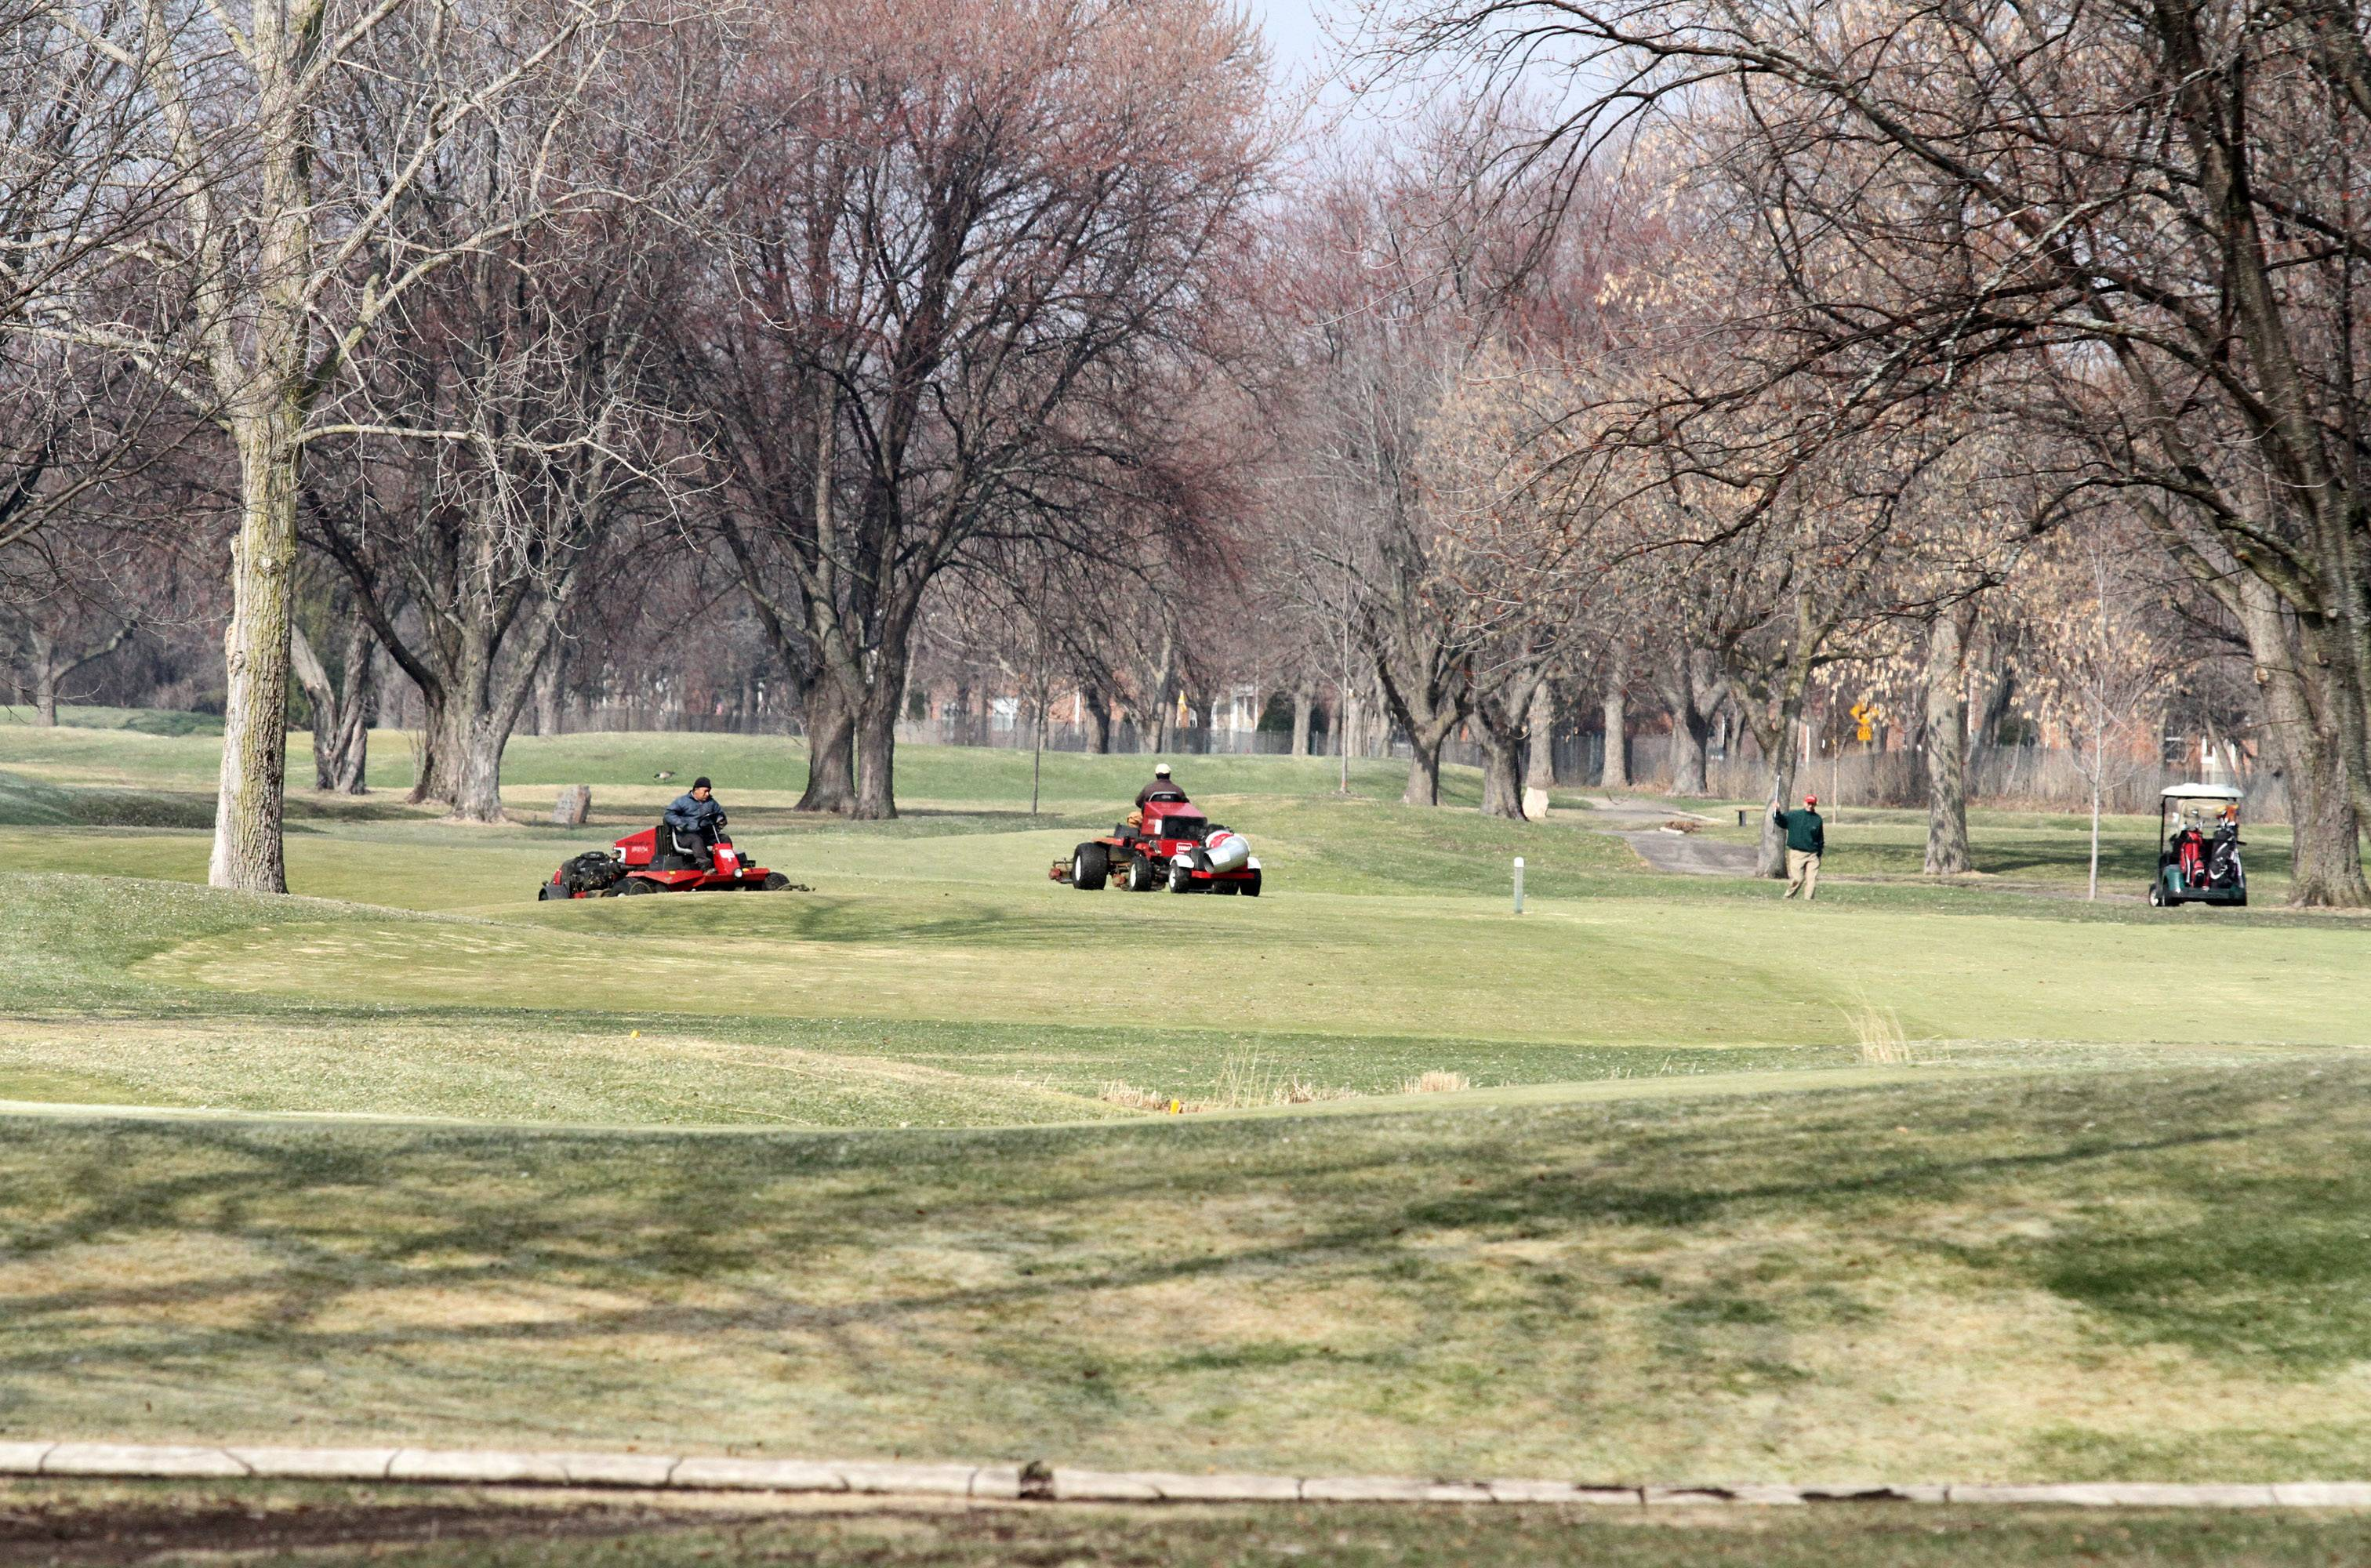 George LeClaire/gleclaire@dailyherald.comGreens keepers cutting the fairway at Chevy Chase Golf Course on Tuesday in Wheeling.